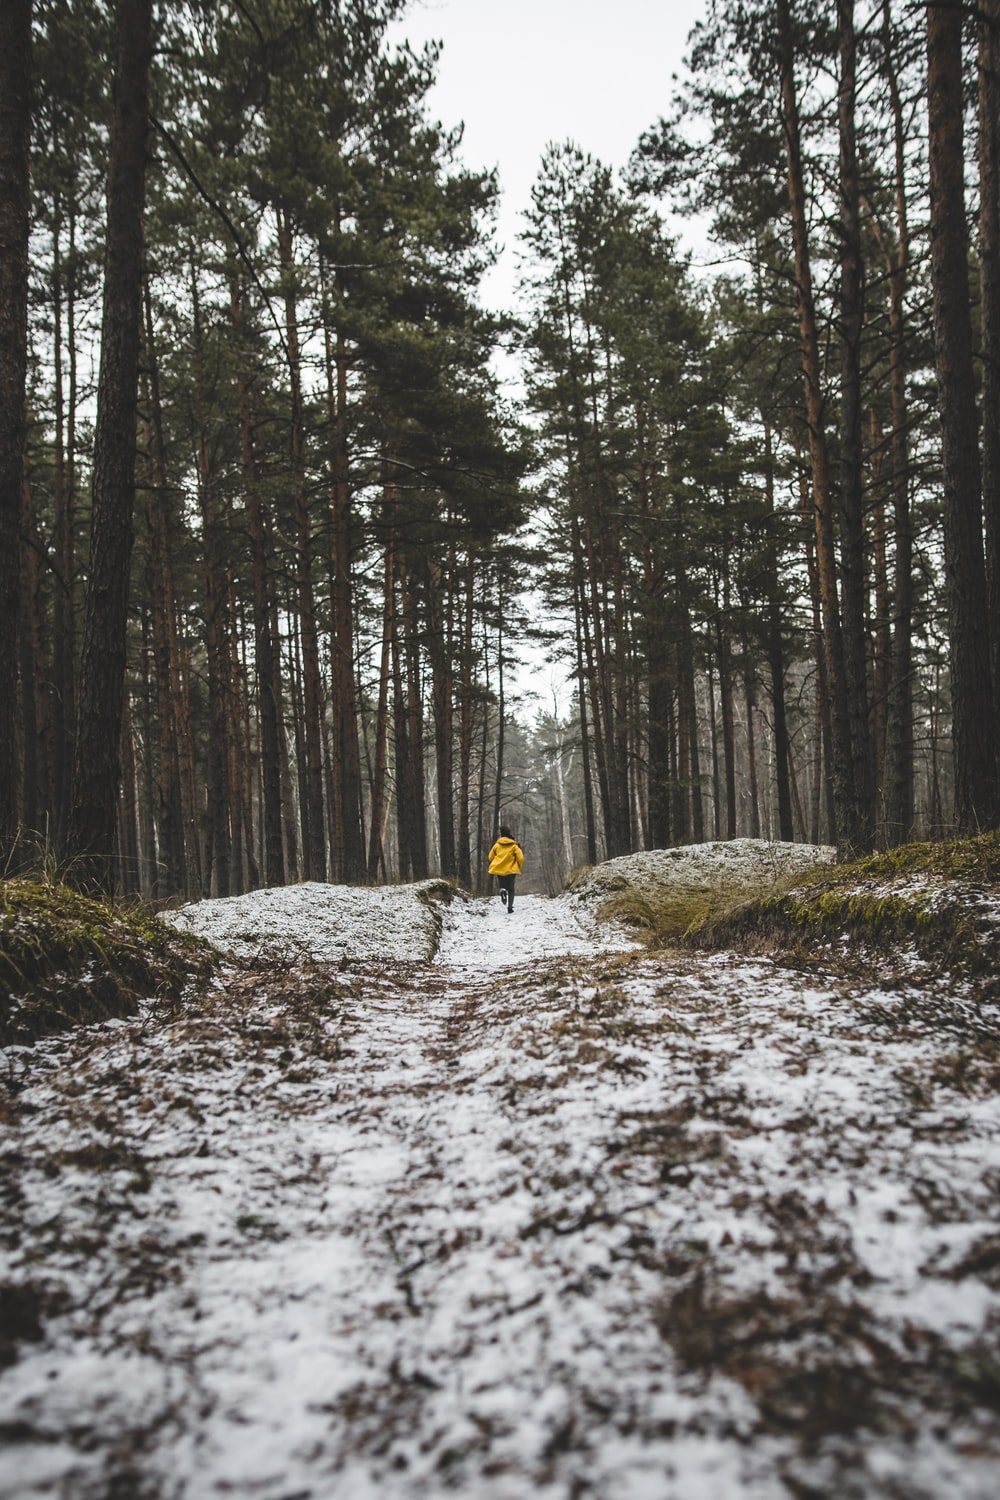 person in yellow jacket running on forest